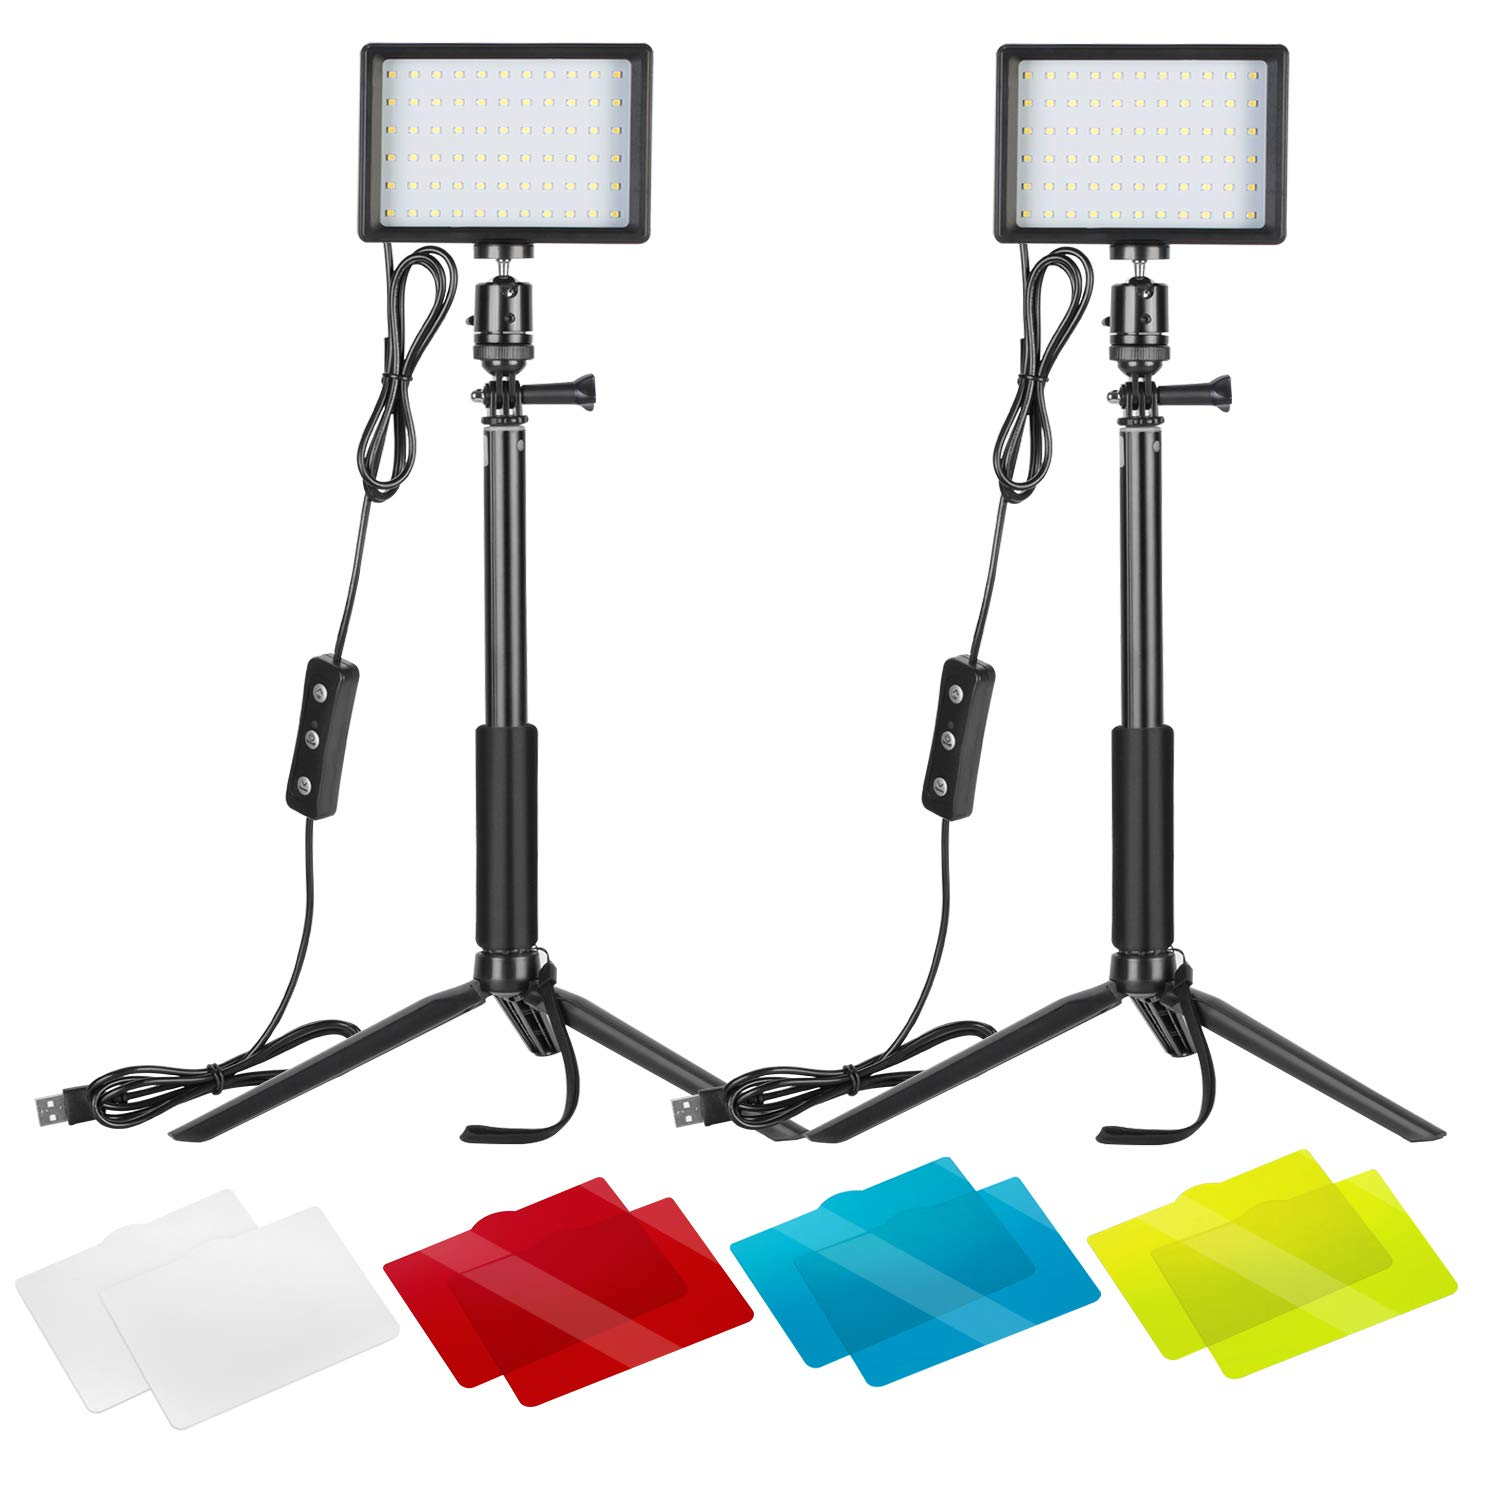 Neewer 2 Packs Dimmable 5600K USB LED Video Light with Adjustable Tripod Stand/Color Filters for Tabletop/Low Angle Shooting, Colorful LED Lighting, Product Portrait YouTube Video Photography by Neewer